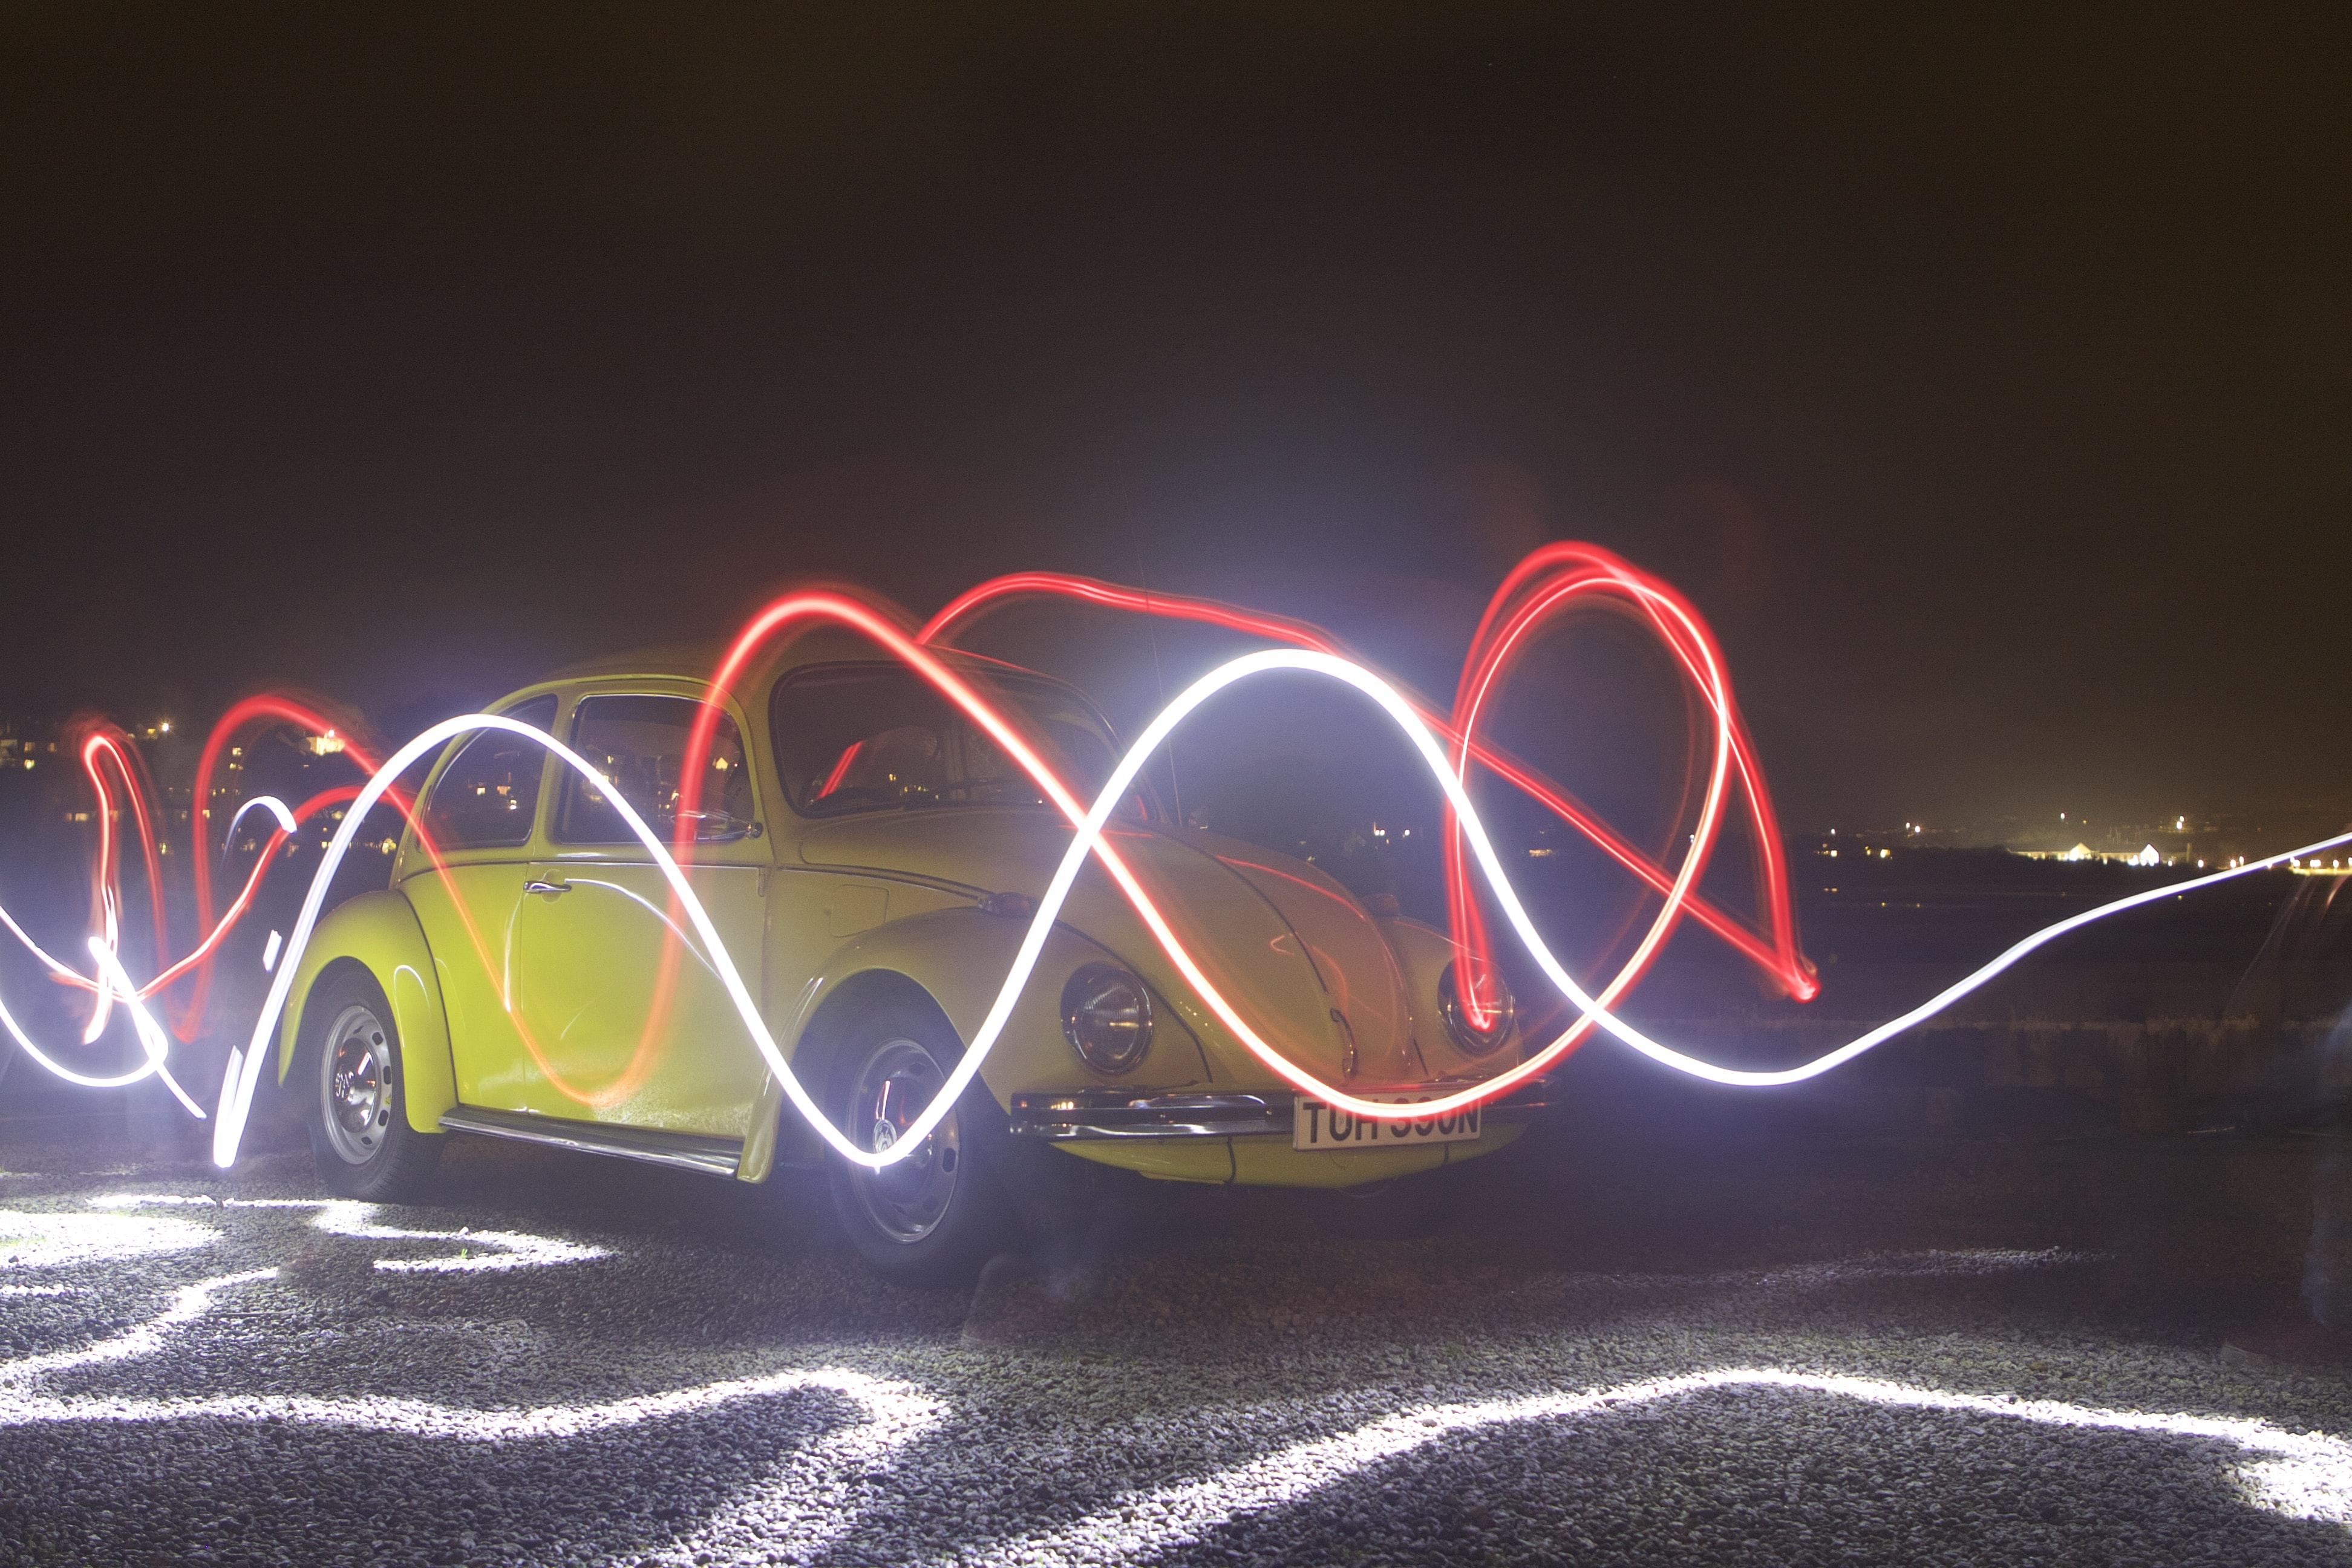 Red and white light trails drawn in the air in front of the yellow vintage Volkswagen beetle at night